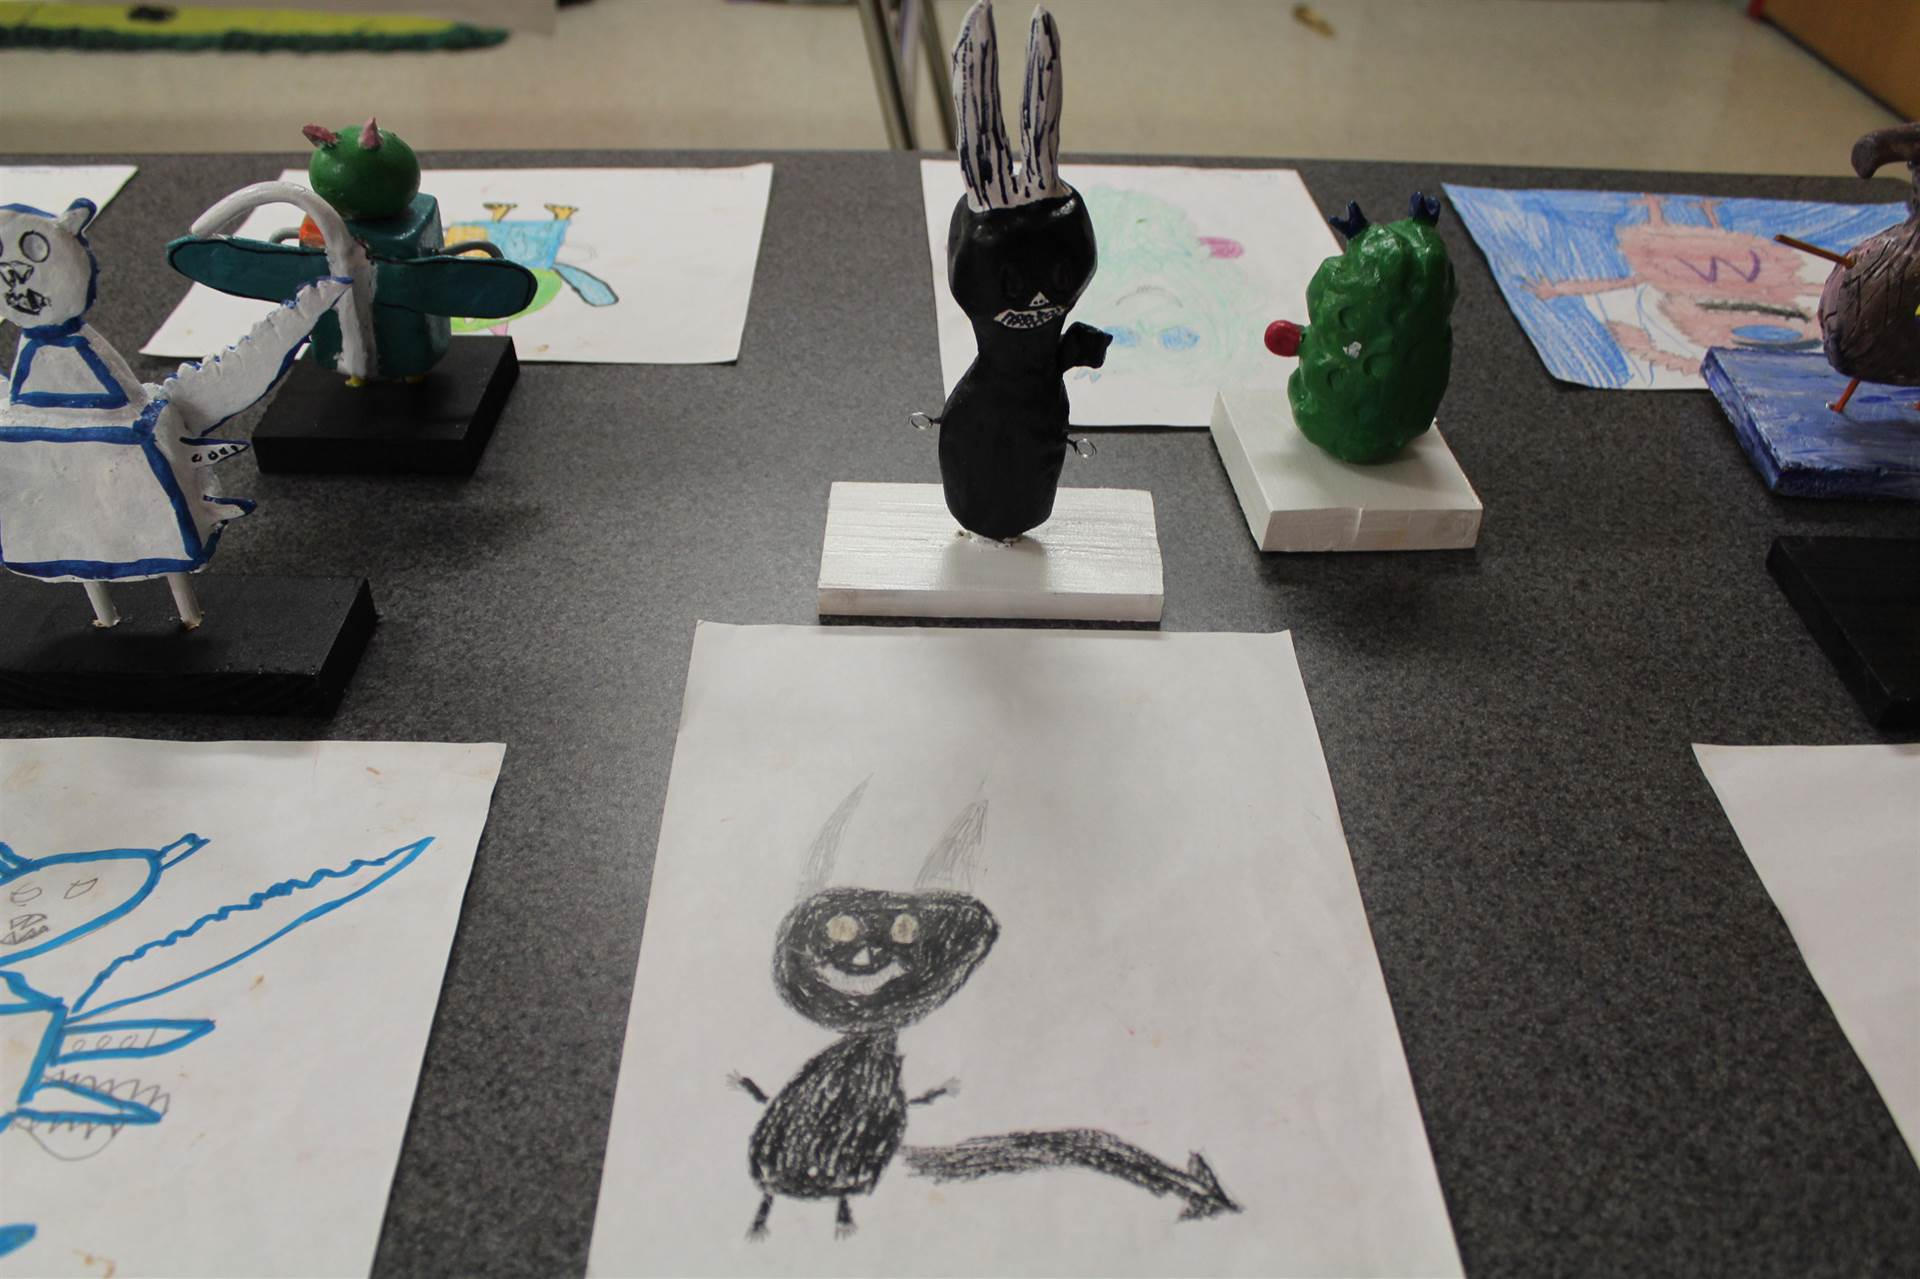 monster 3 d sculpture next to drawn picture 38.